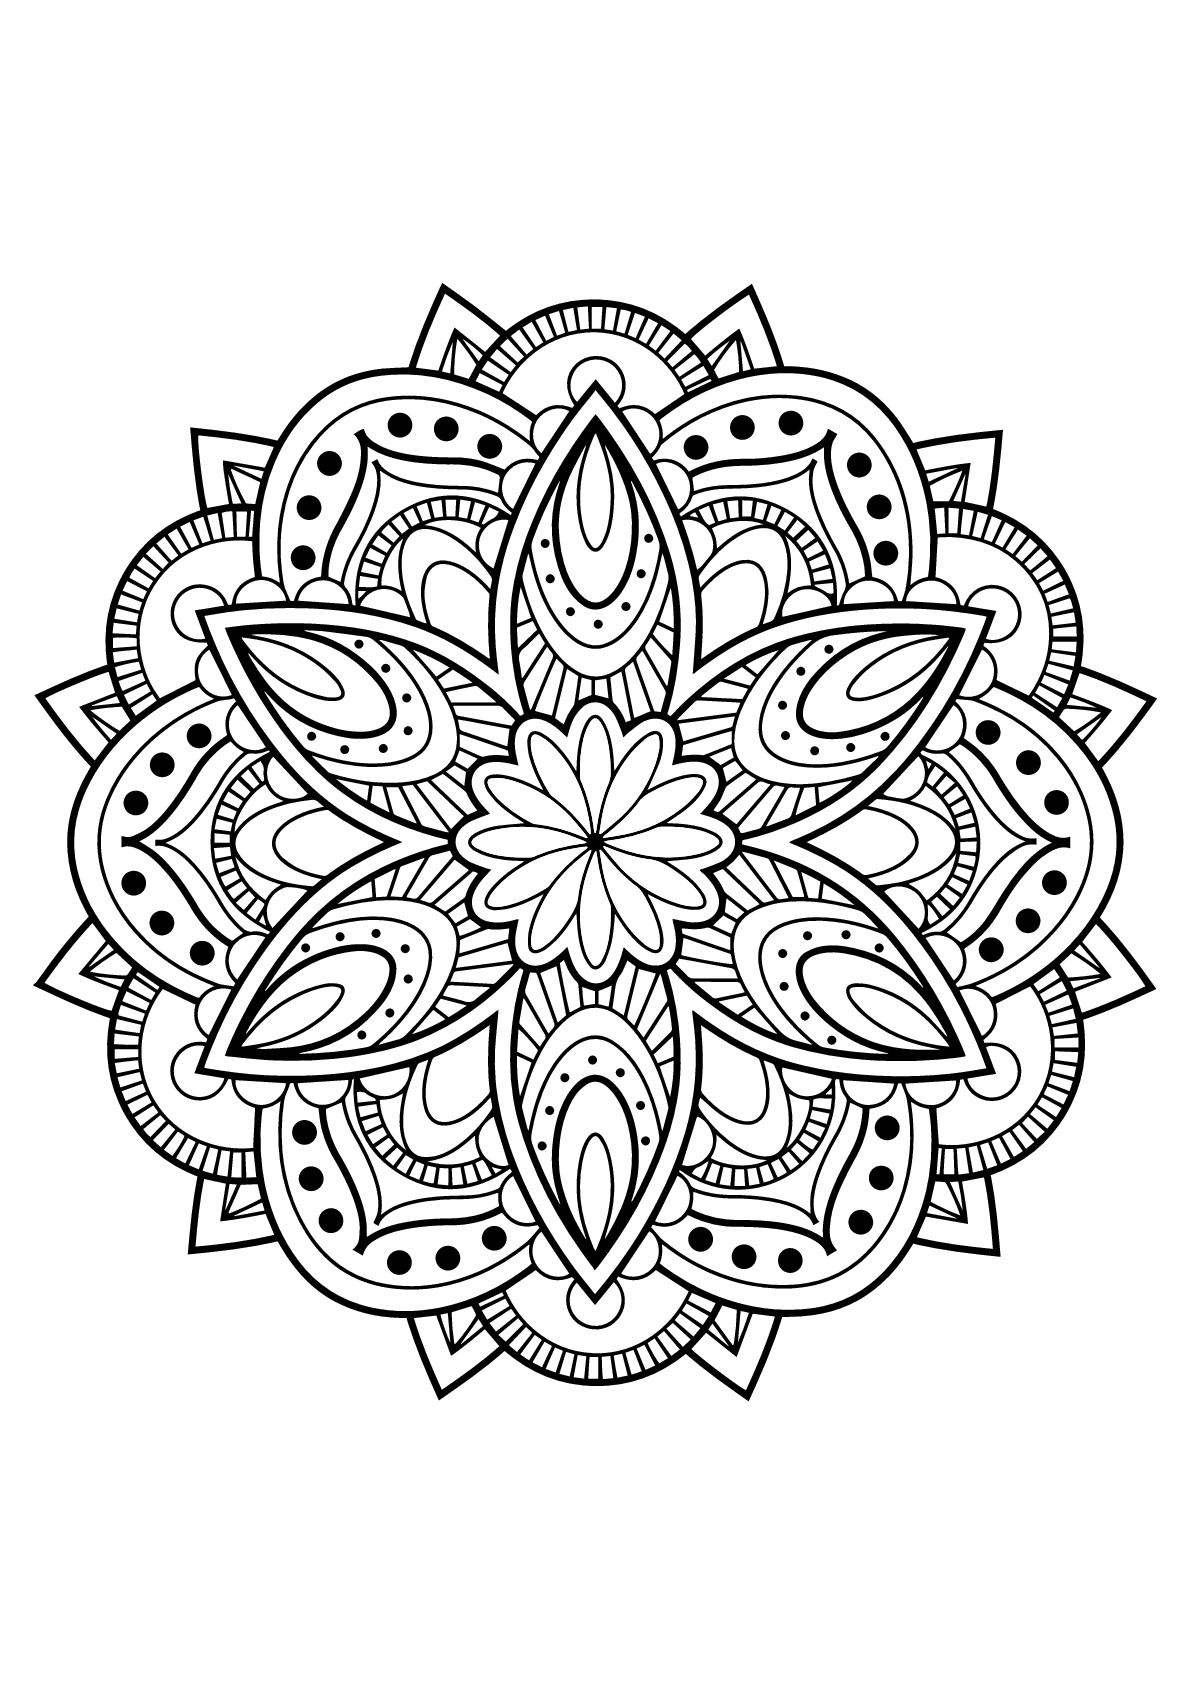 Mandala from free coloring books for adults 16 - M&alas Adult ...